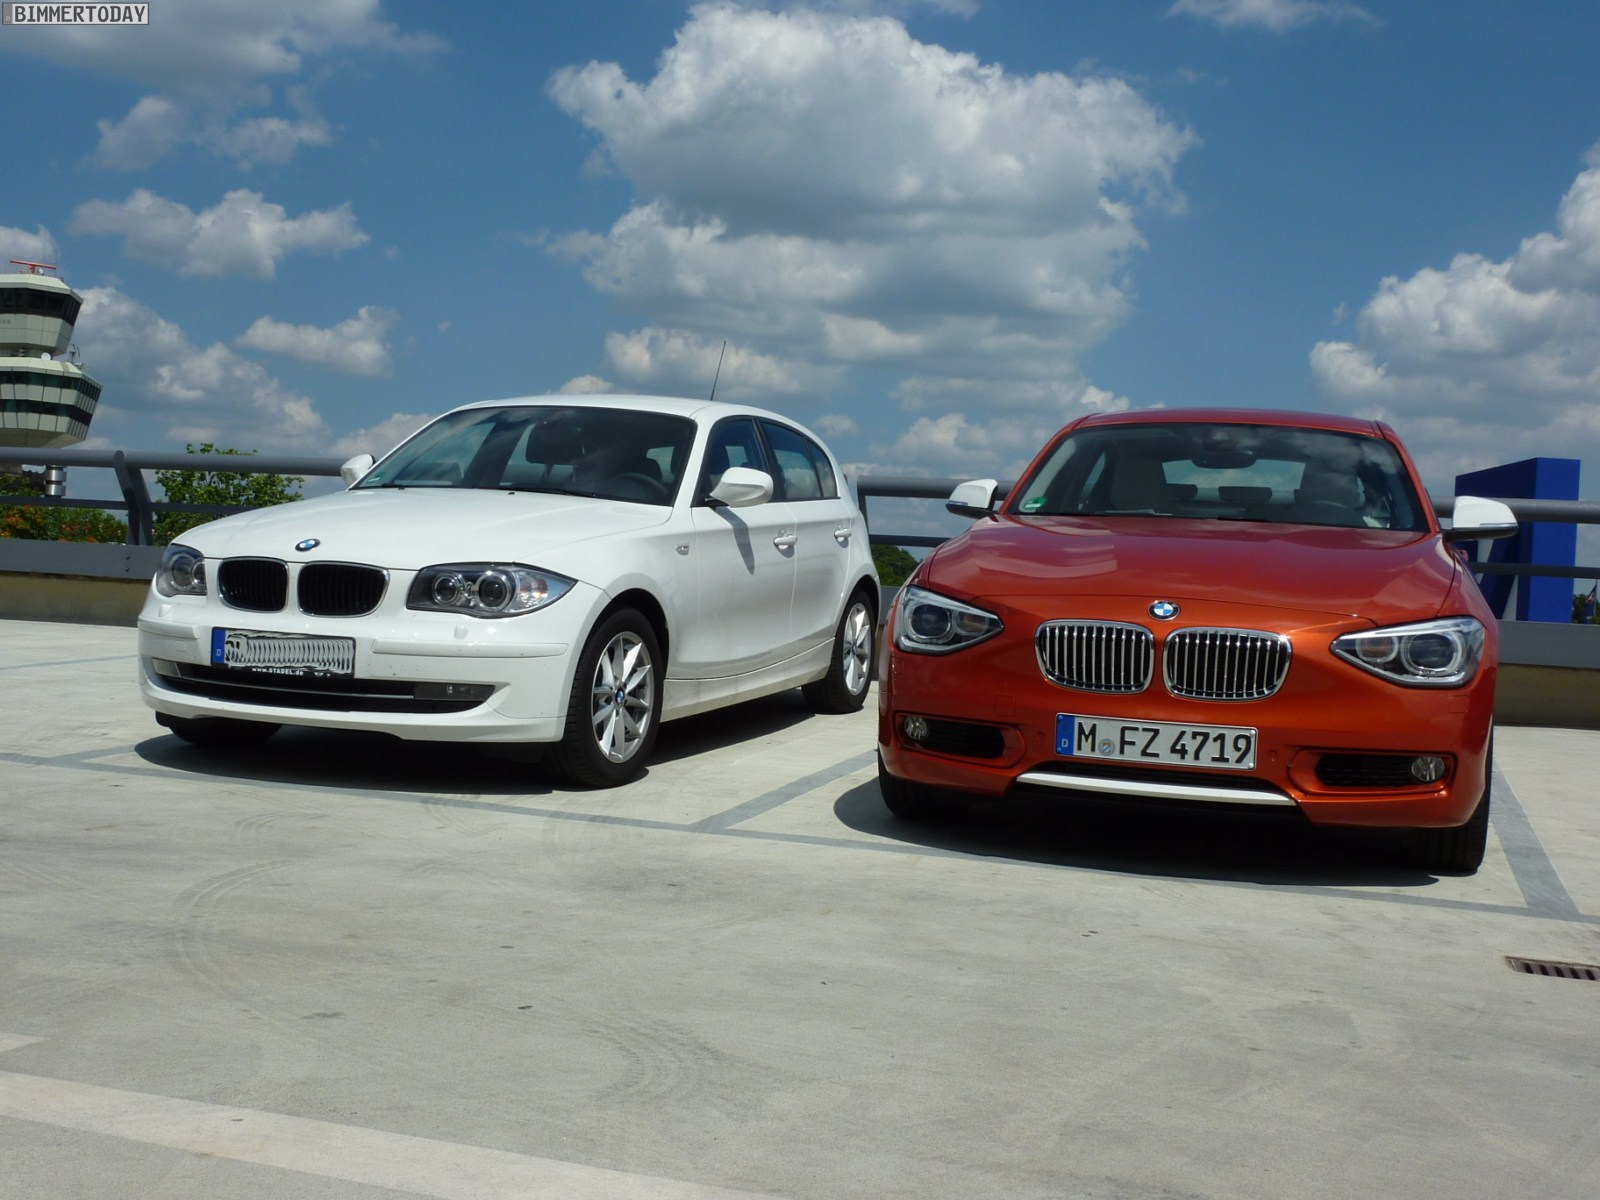 Side By Side Bmw 1 Series E87 Vs 2012 Bmw 1 Series